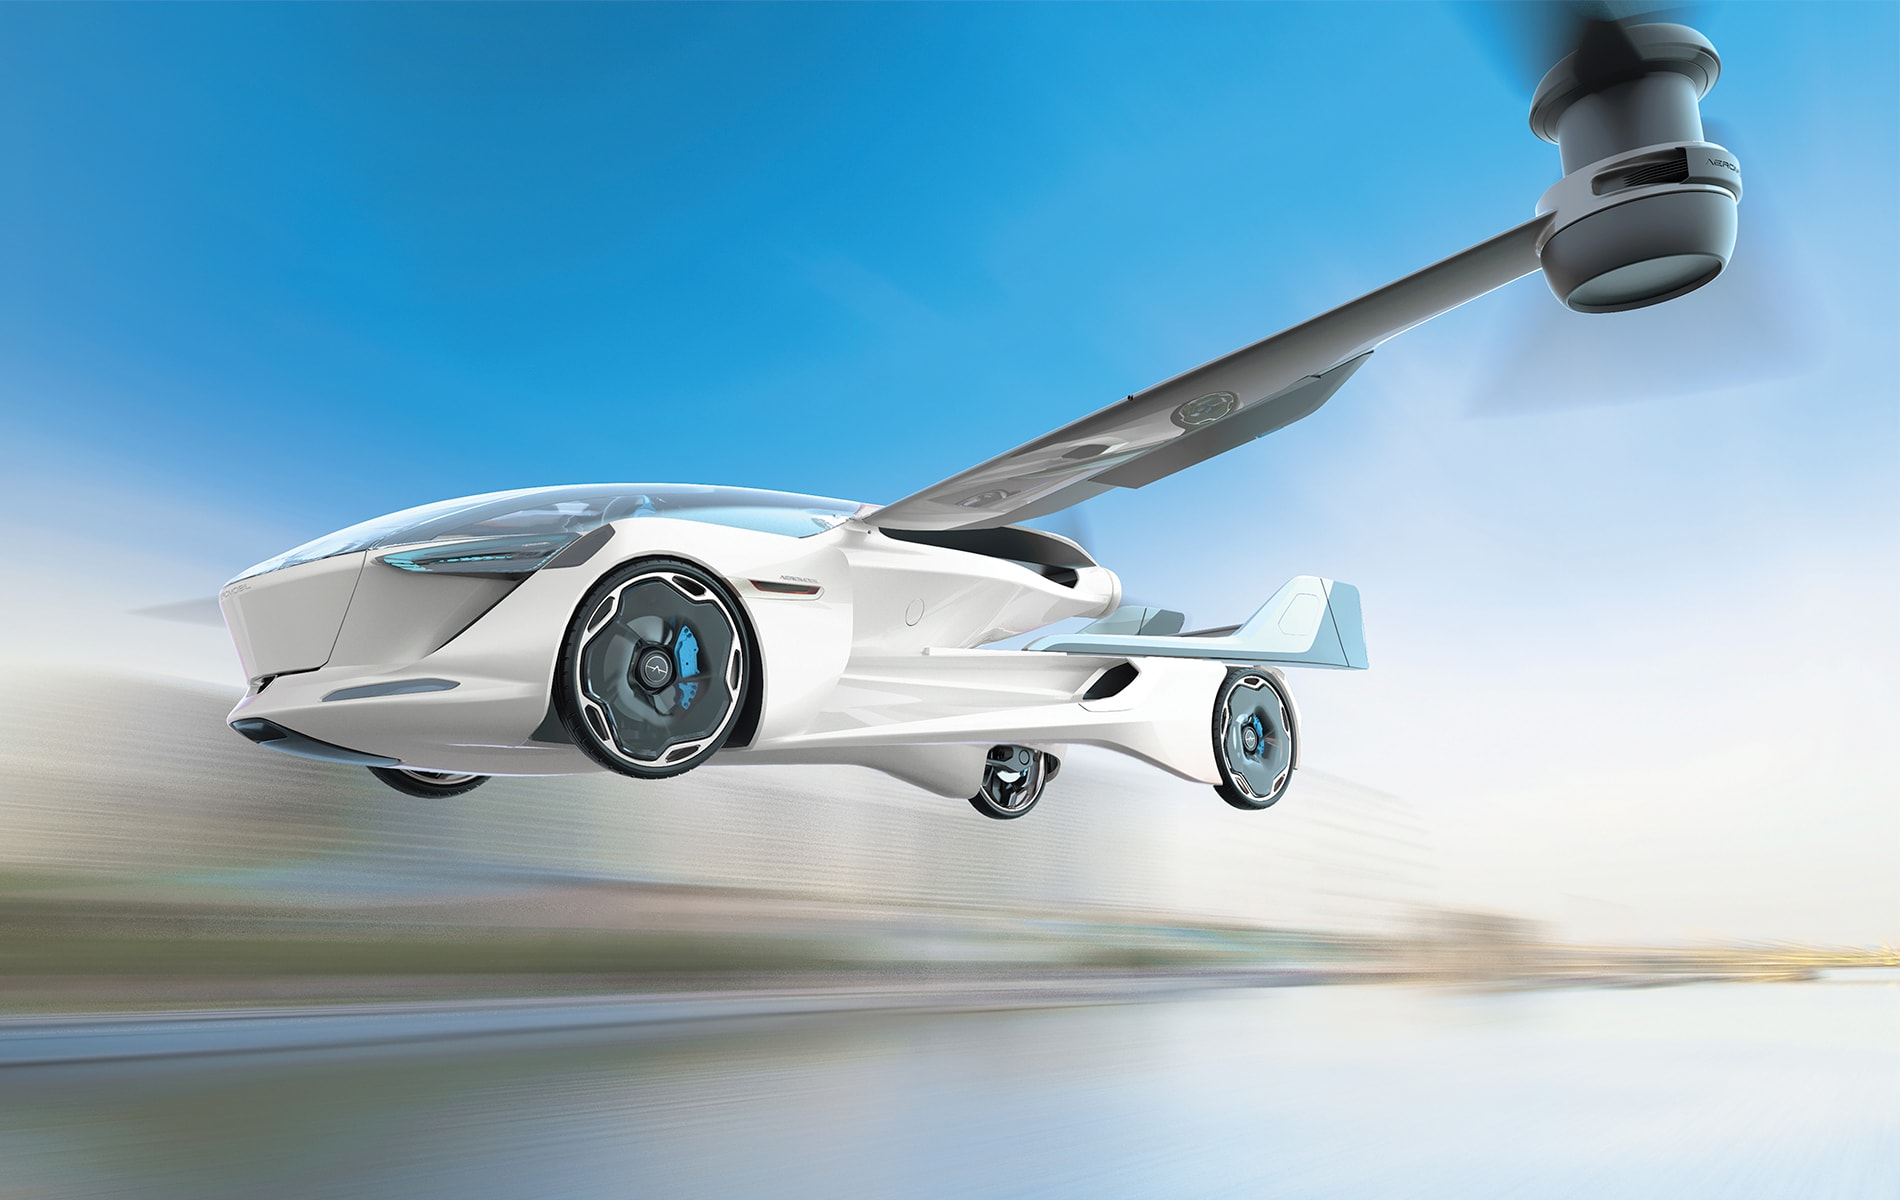 The AeroMobil 5.0 VTOL—This four-seat concept has two electrically driven rotors for vertical takeoff with horizontal thrust from an electric-powered rear-mounted pusher propeller. Each occupant will have a personalized in-flight experience, with flight or drive data, and advanced communications and media to ensure occupants stay connected while in the air or on the road. The company expects the AeroMobil 5.0 to be available within seven to ten years, in line with the reality of building and scaling the infrastructure and regulation for such innovative personal transportation. Artist rendering courtesy of AeroMobil.